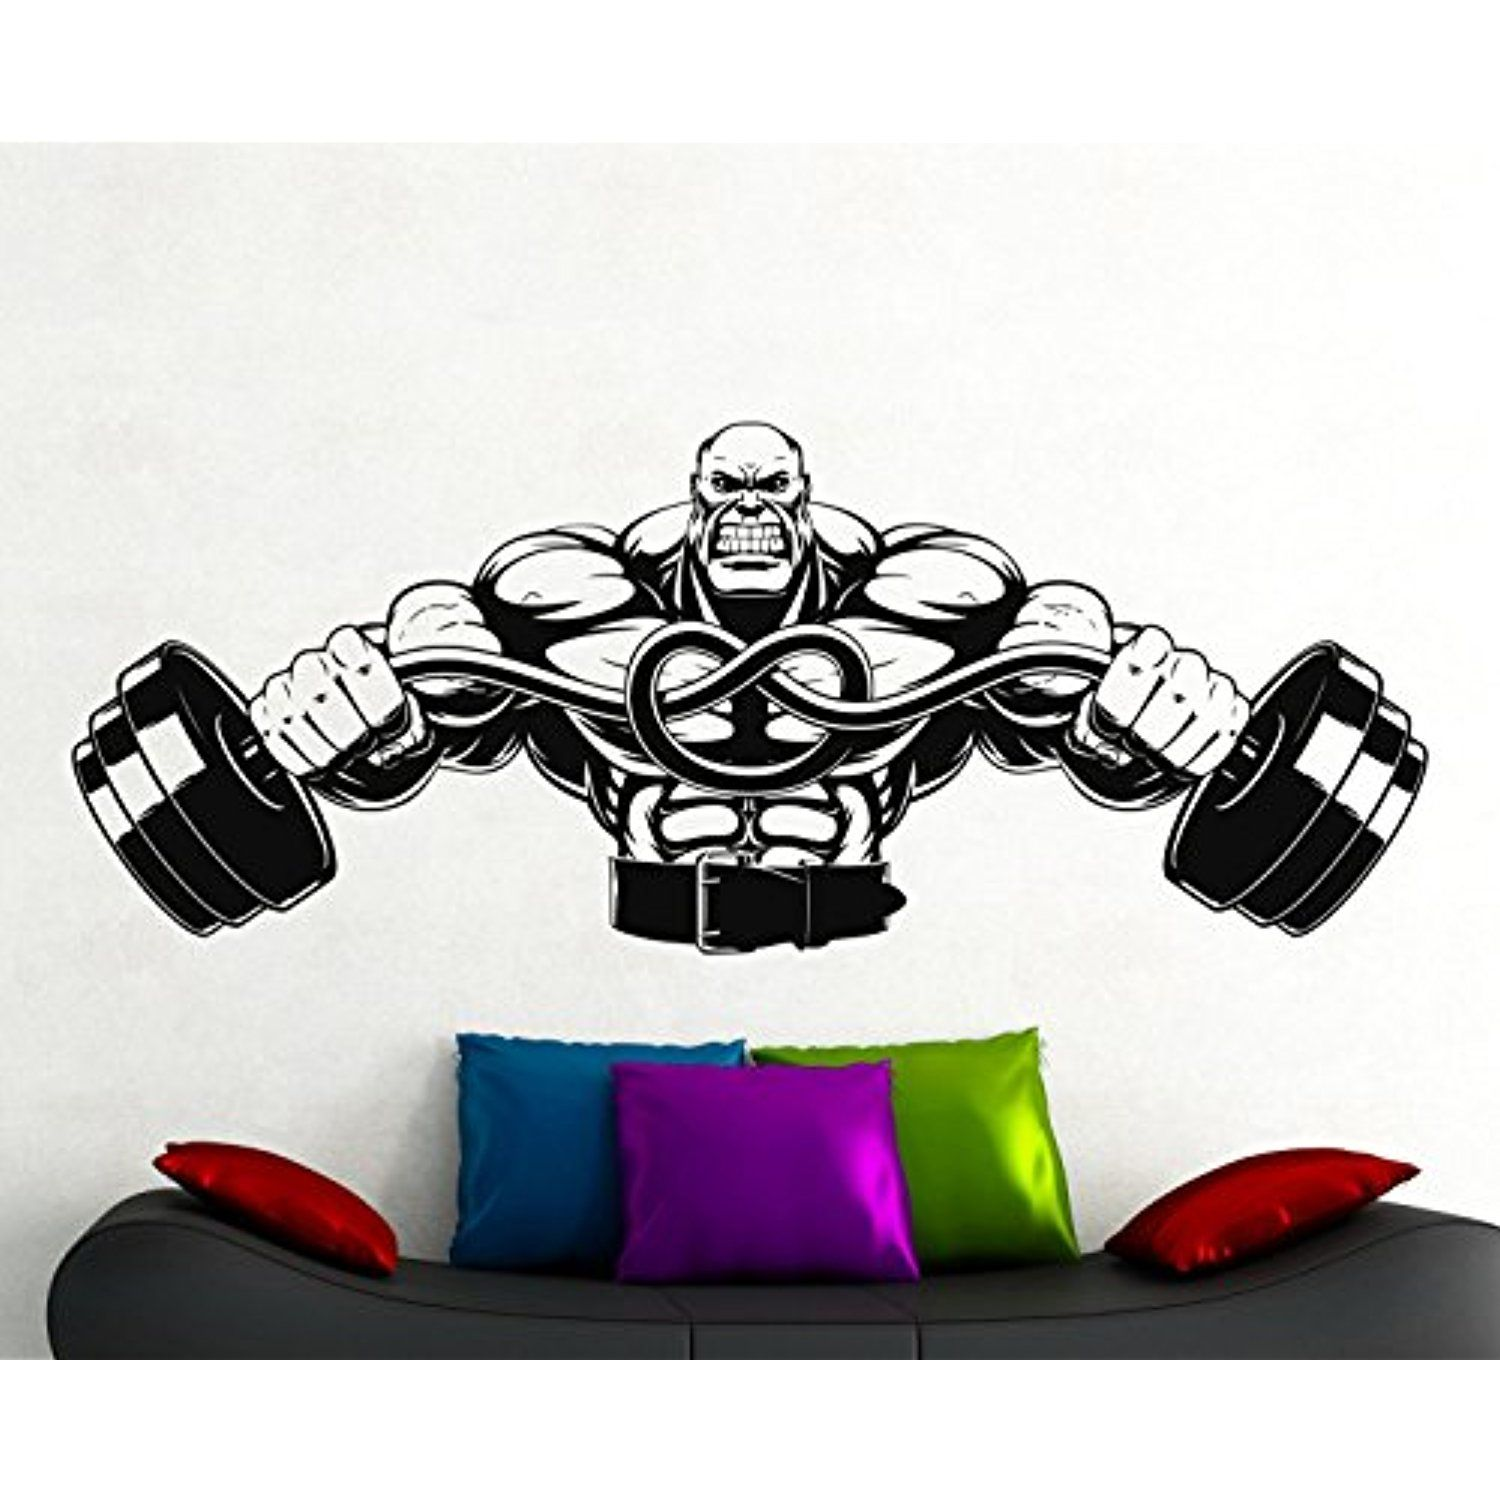 Fitness wall decal vinyl stickers sport gym words interior home art